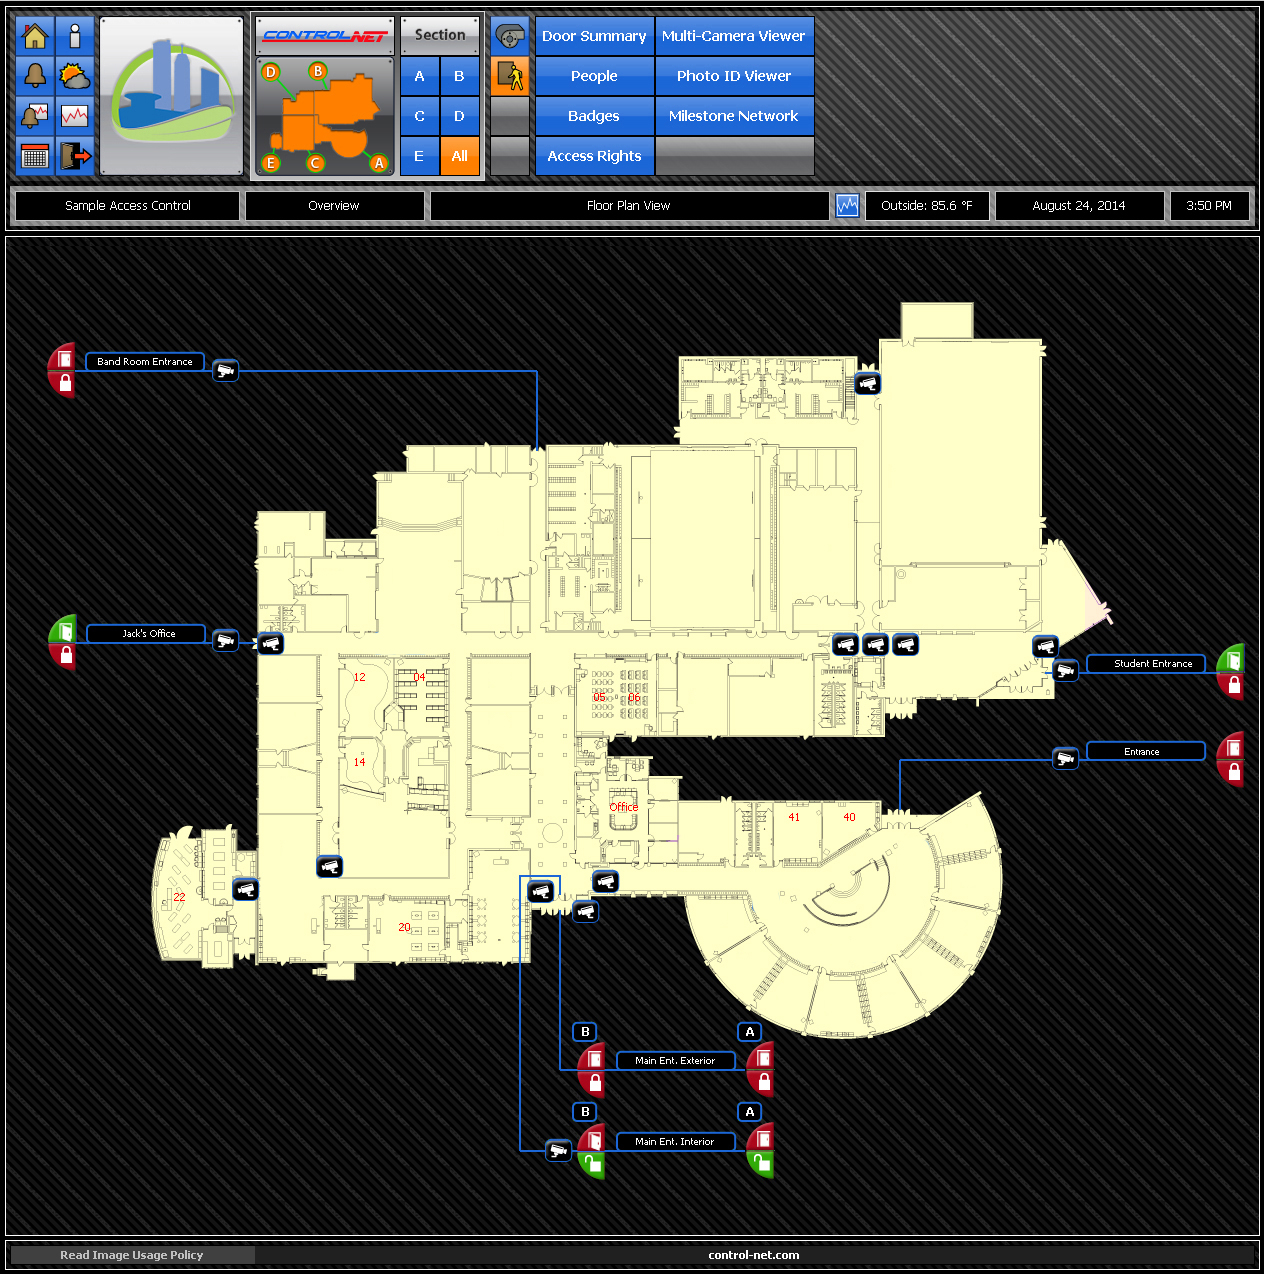 Access Control Floor Plan Graphic